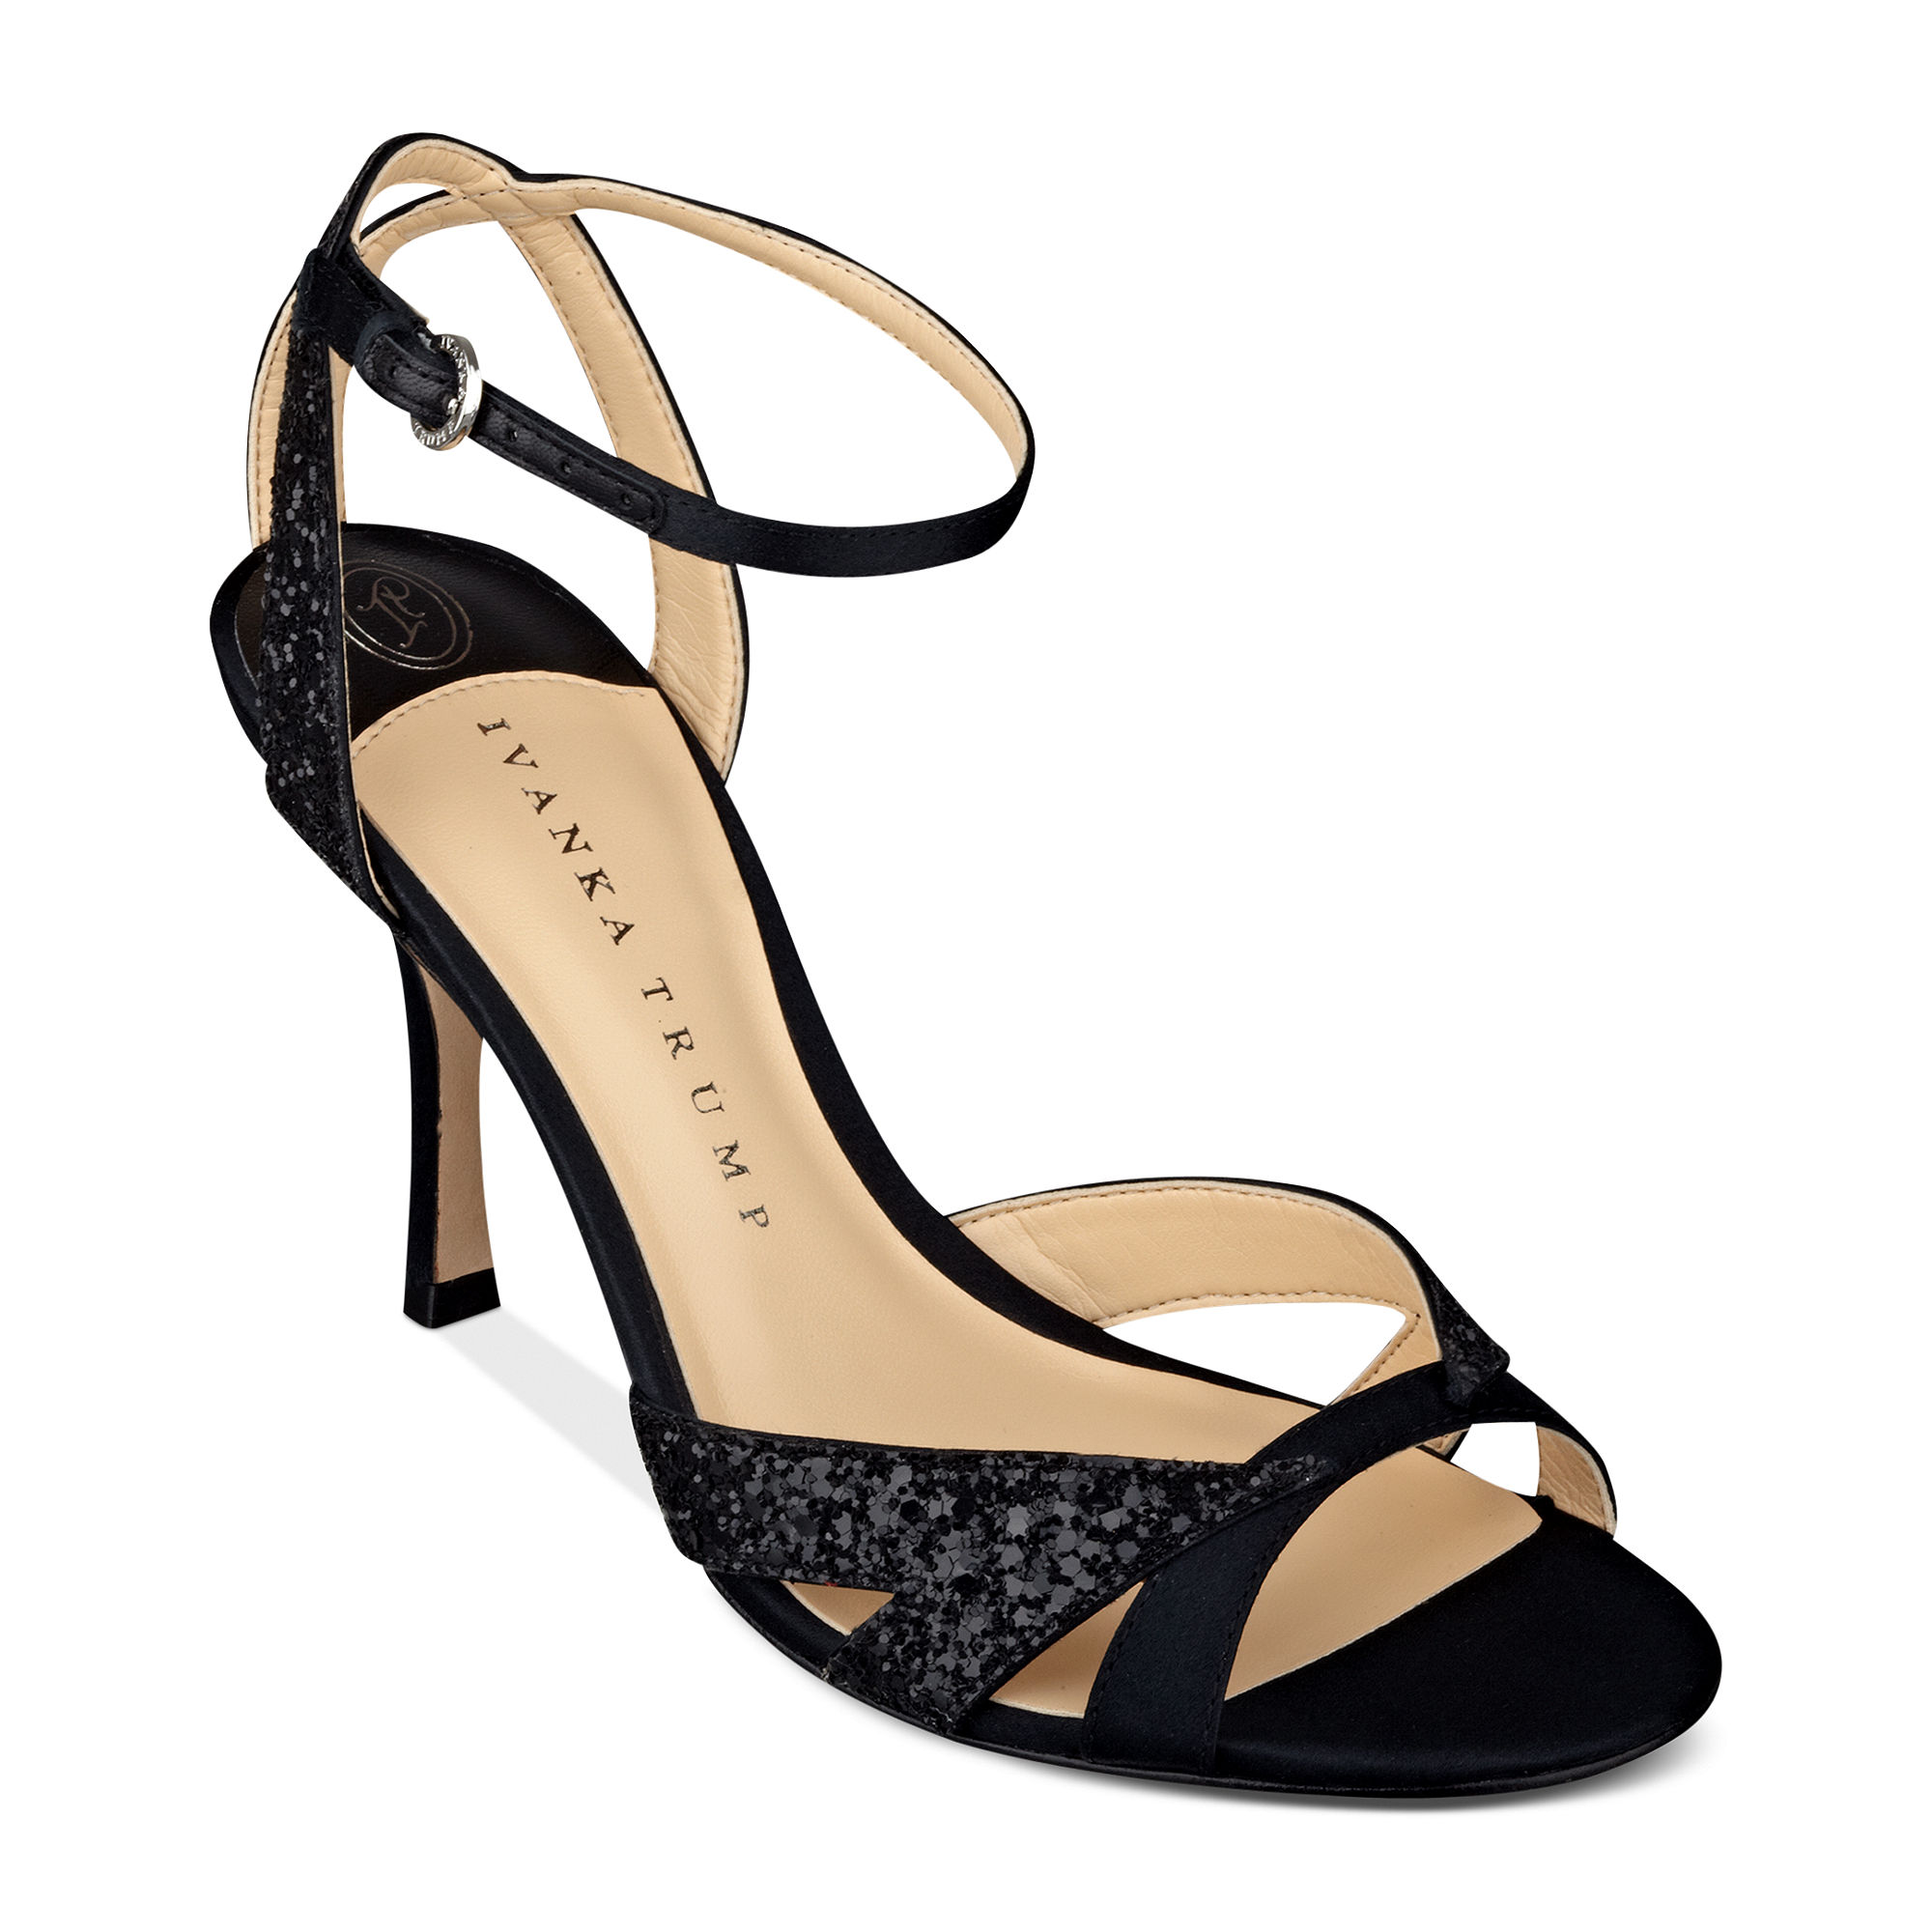 d5176f8a6a98d Ivanka Trump Anita Mid Heel Evening Sandals in Black - Lyst